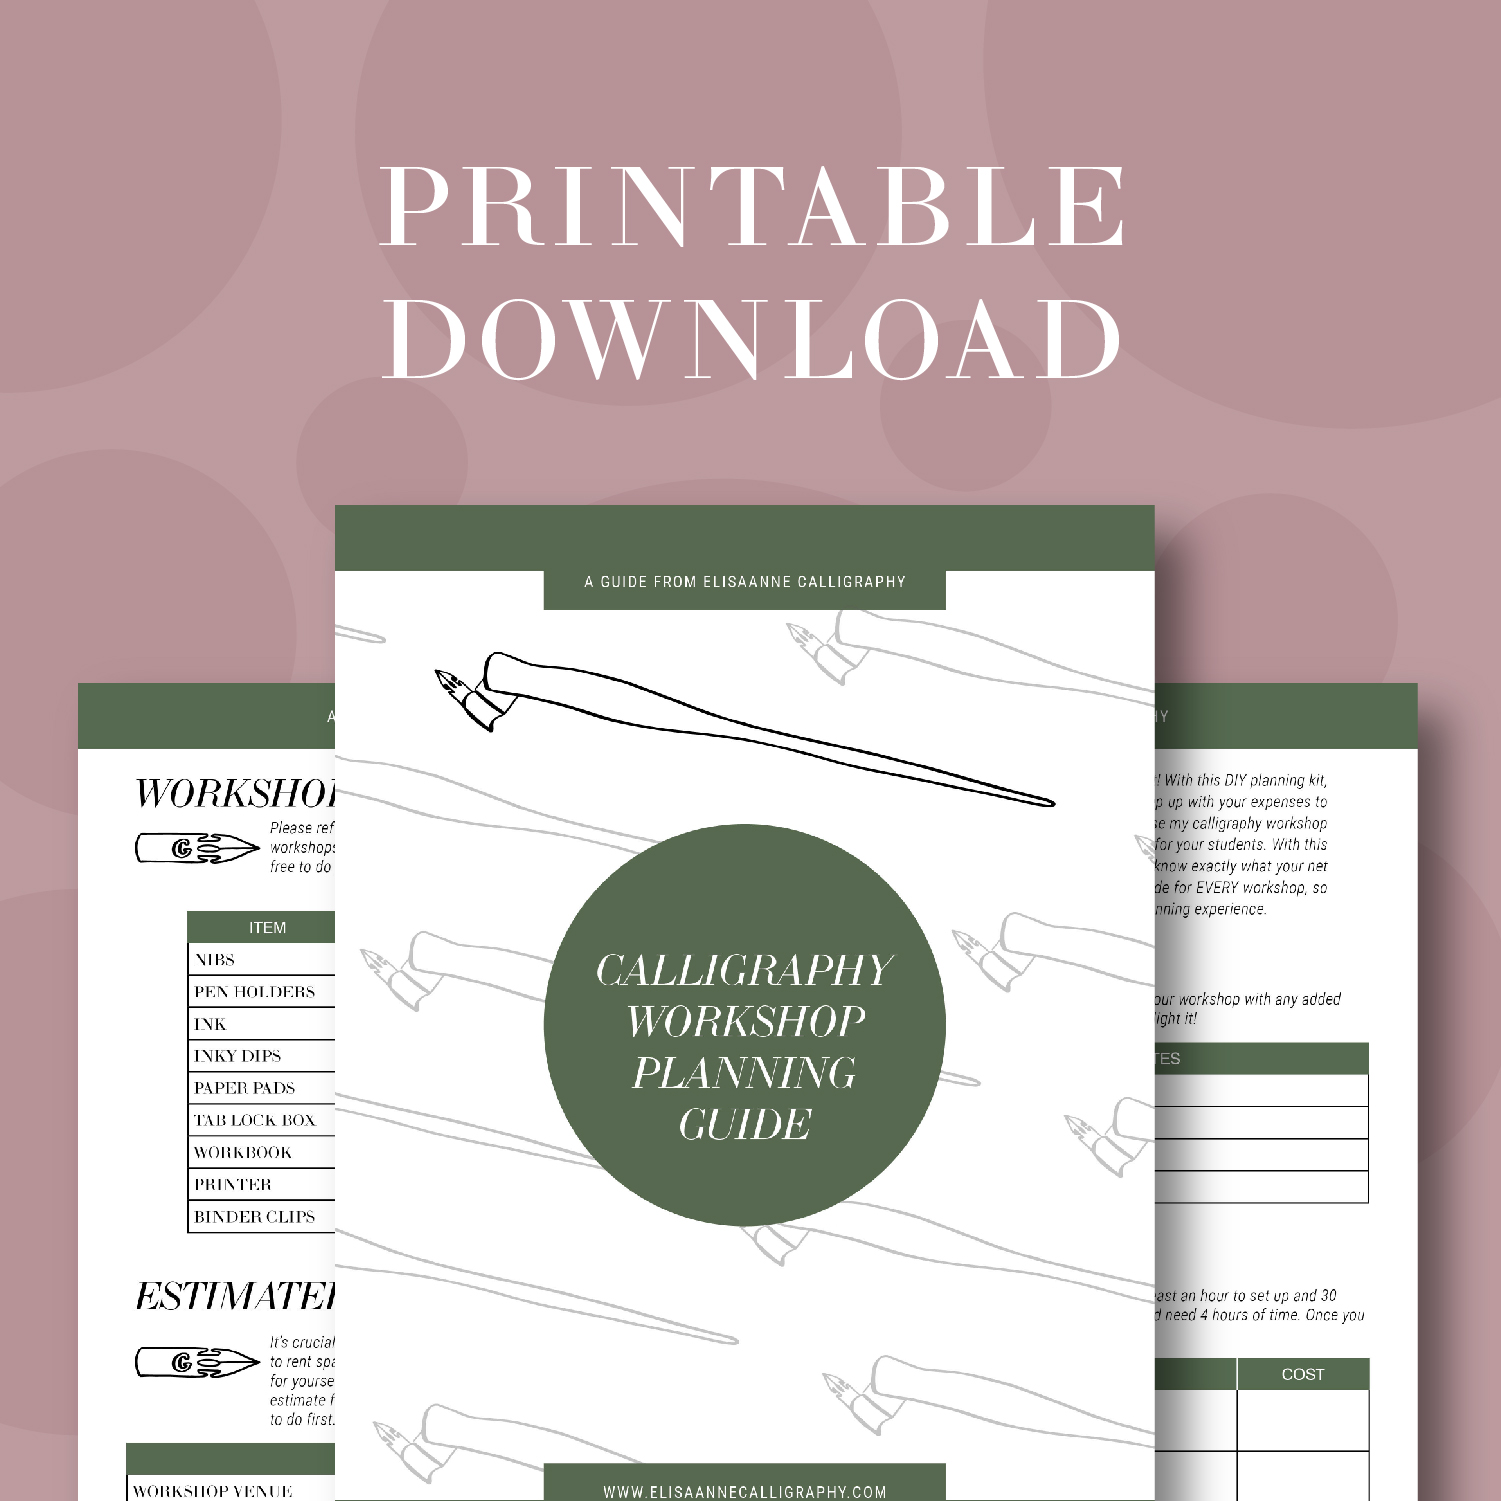 CALLIGRAPHY WORKSHOP PLANNING GUIDE - Want to host a workshop but have no idea where to start? This DIY guide will help you stay organized and keep track of all the details you need!